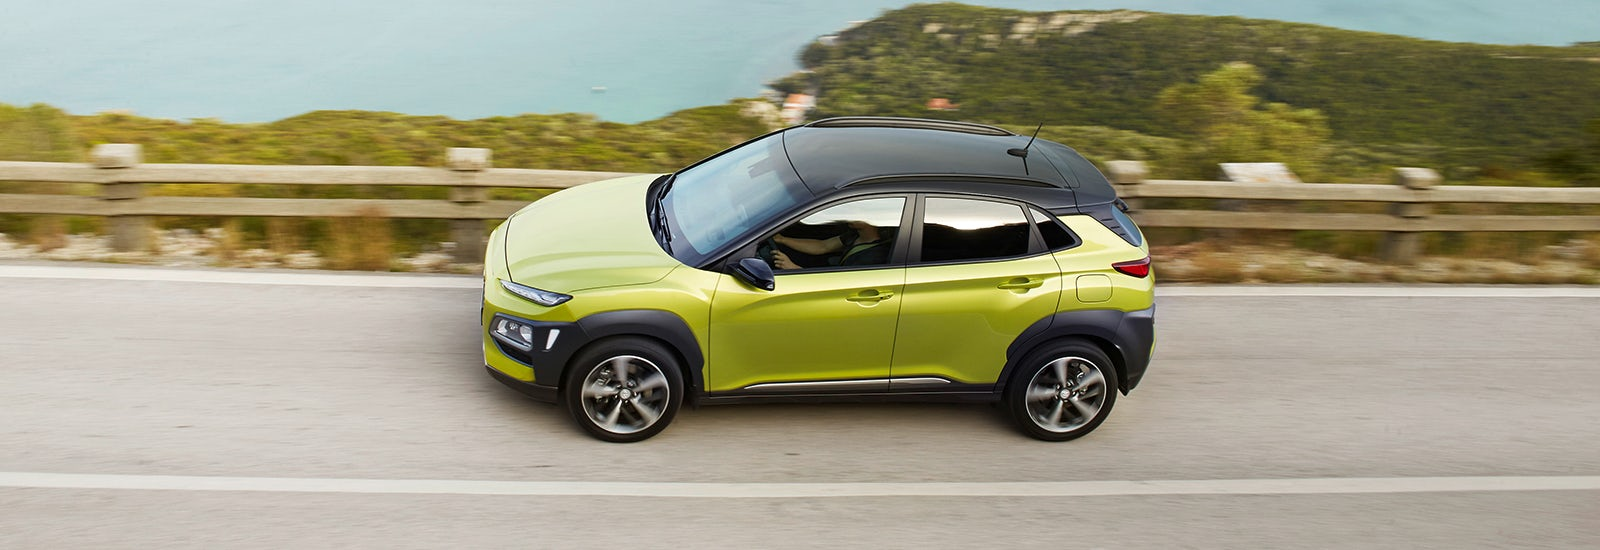 Hyundai Kona Suv Price Specs And Release Date Carwow